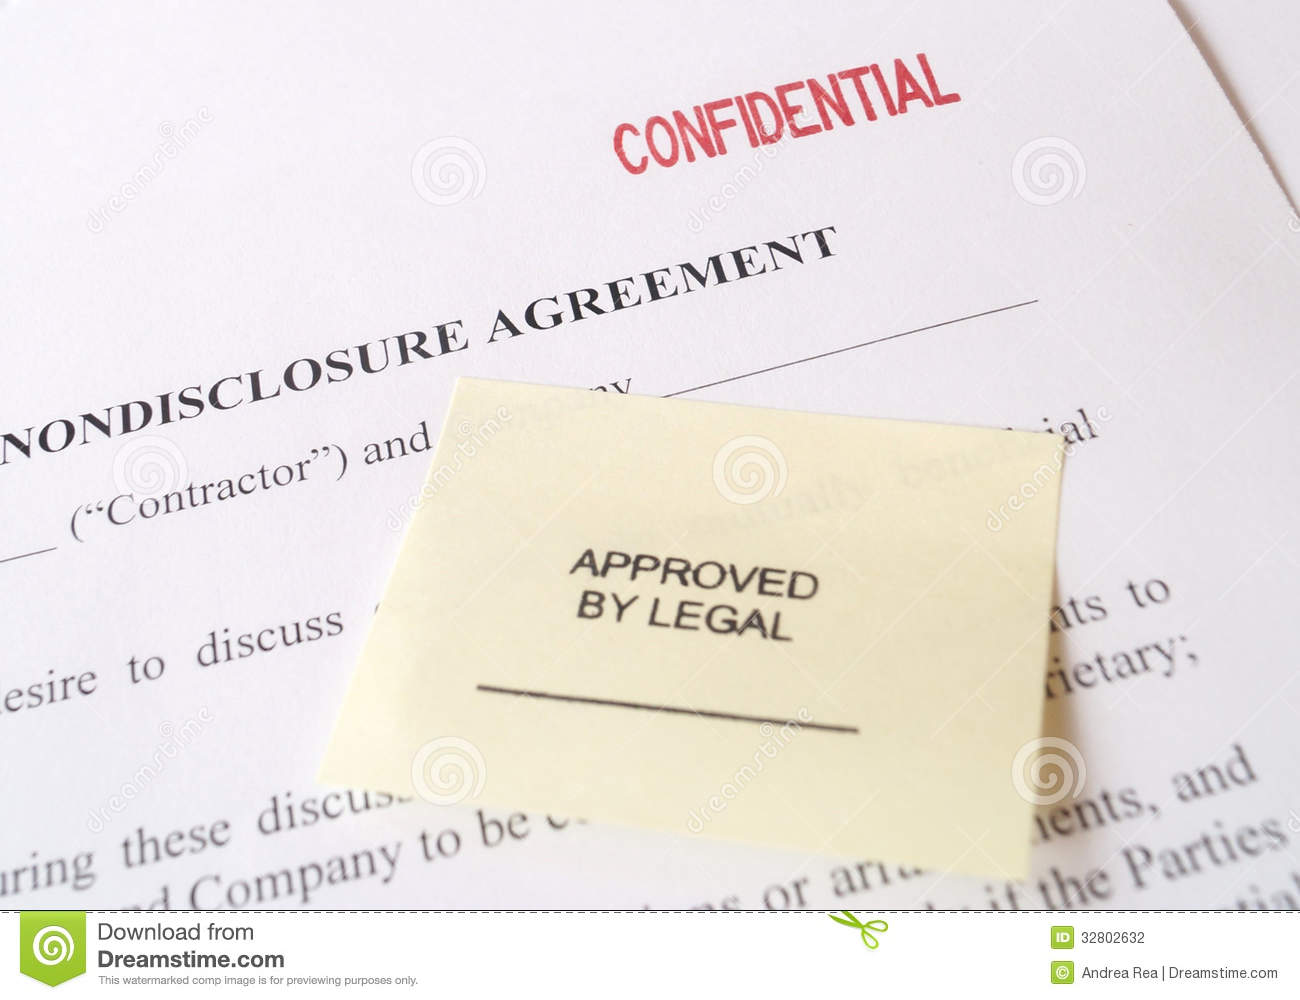 Business plan non-disclosure agreement